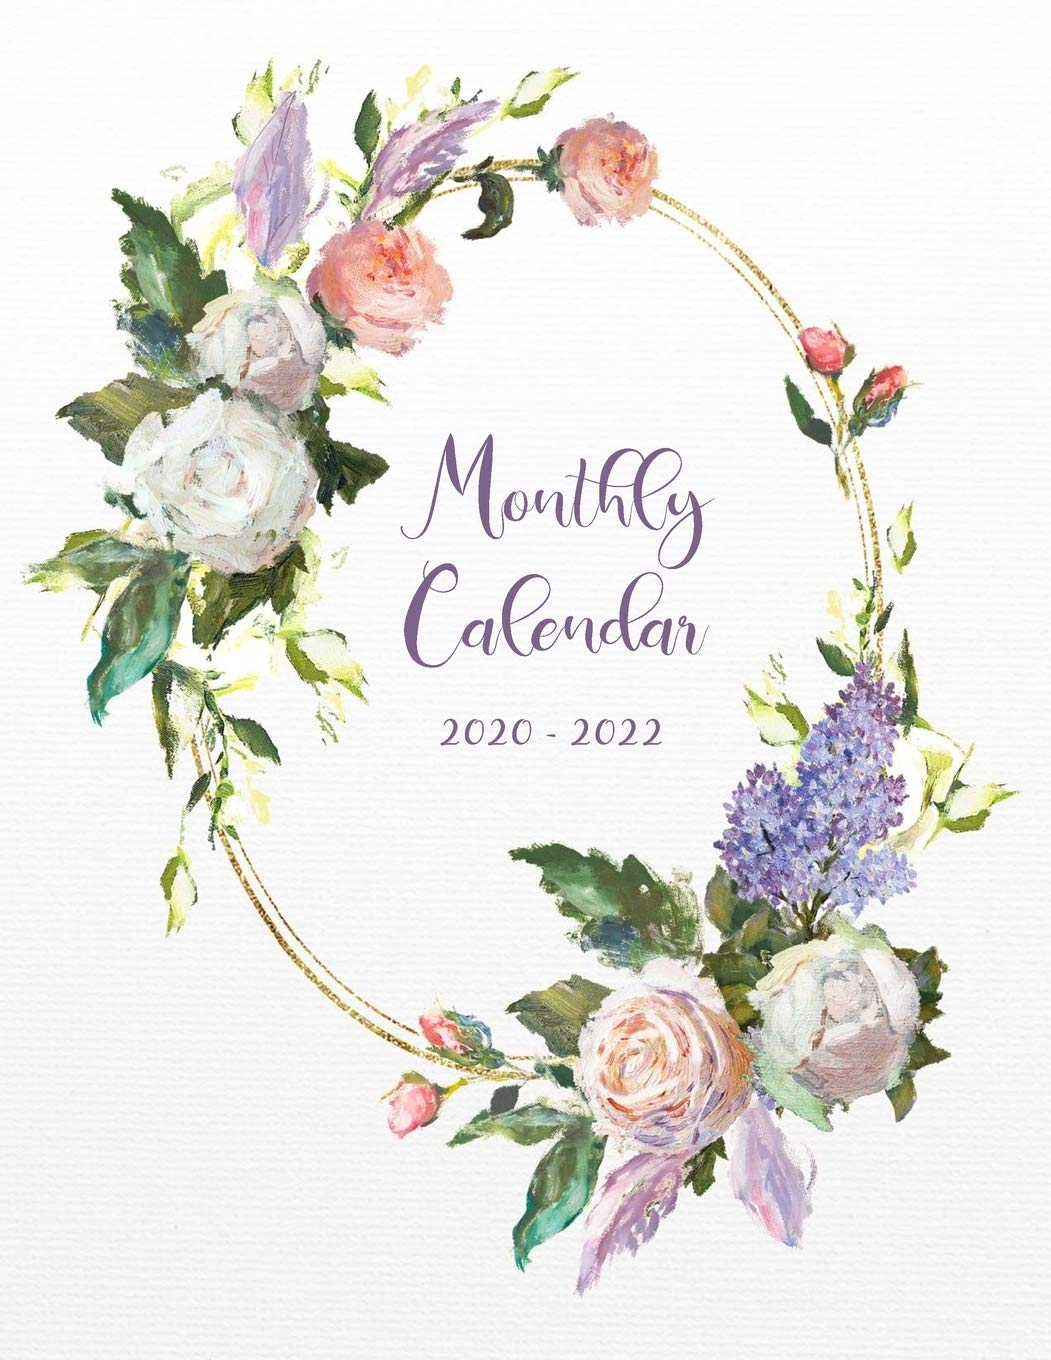 Spring 2022 Uf Calendar.Amazon In Buy Monthly Calendar 2020 2022 White Pink Floral Alphabet Book Online At Low Prices In India Monthly Calendar 2020 2022 White Pink Floral Alphabet Reviews Ratings